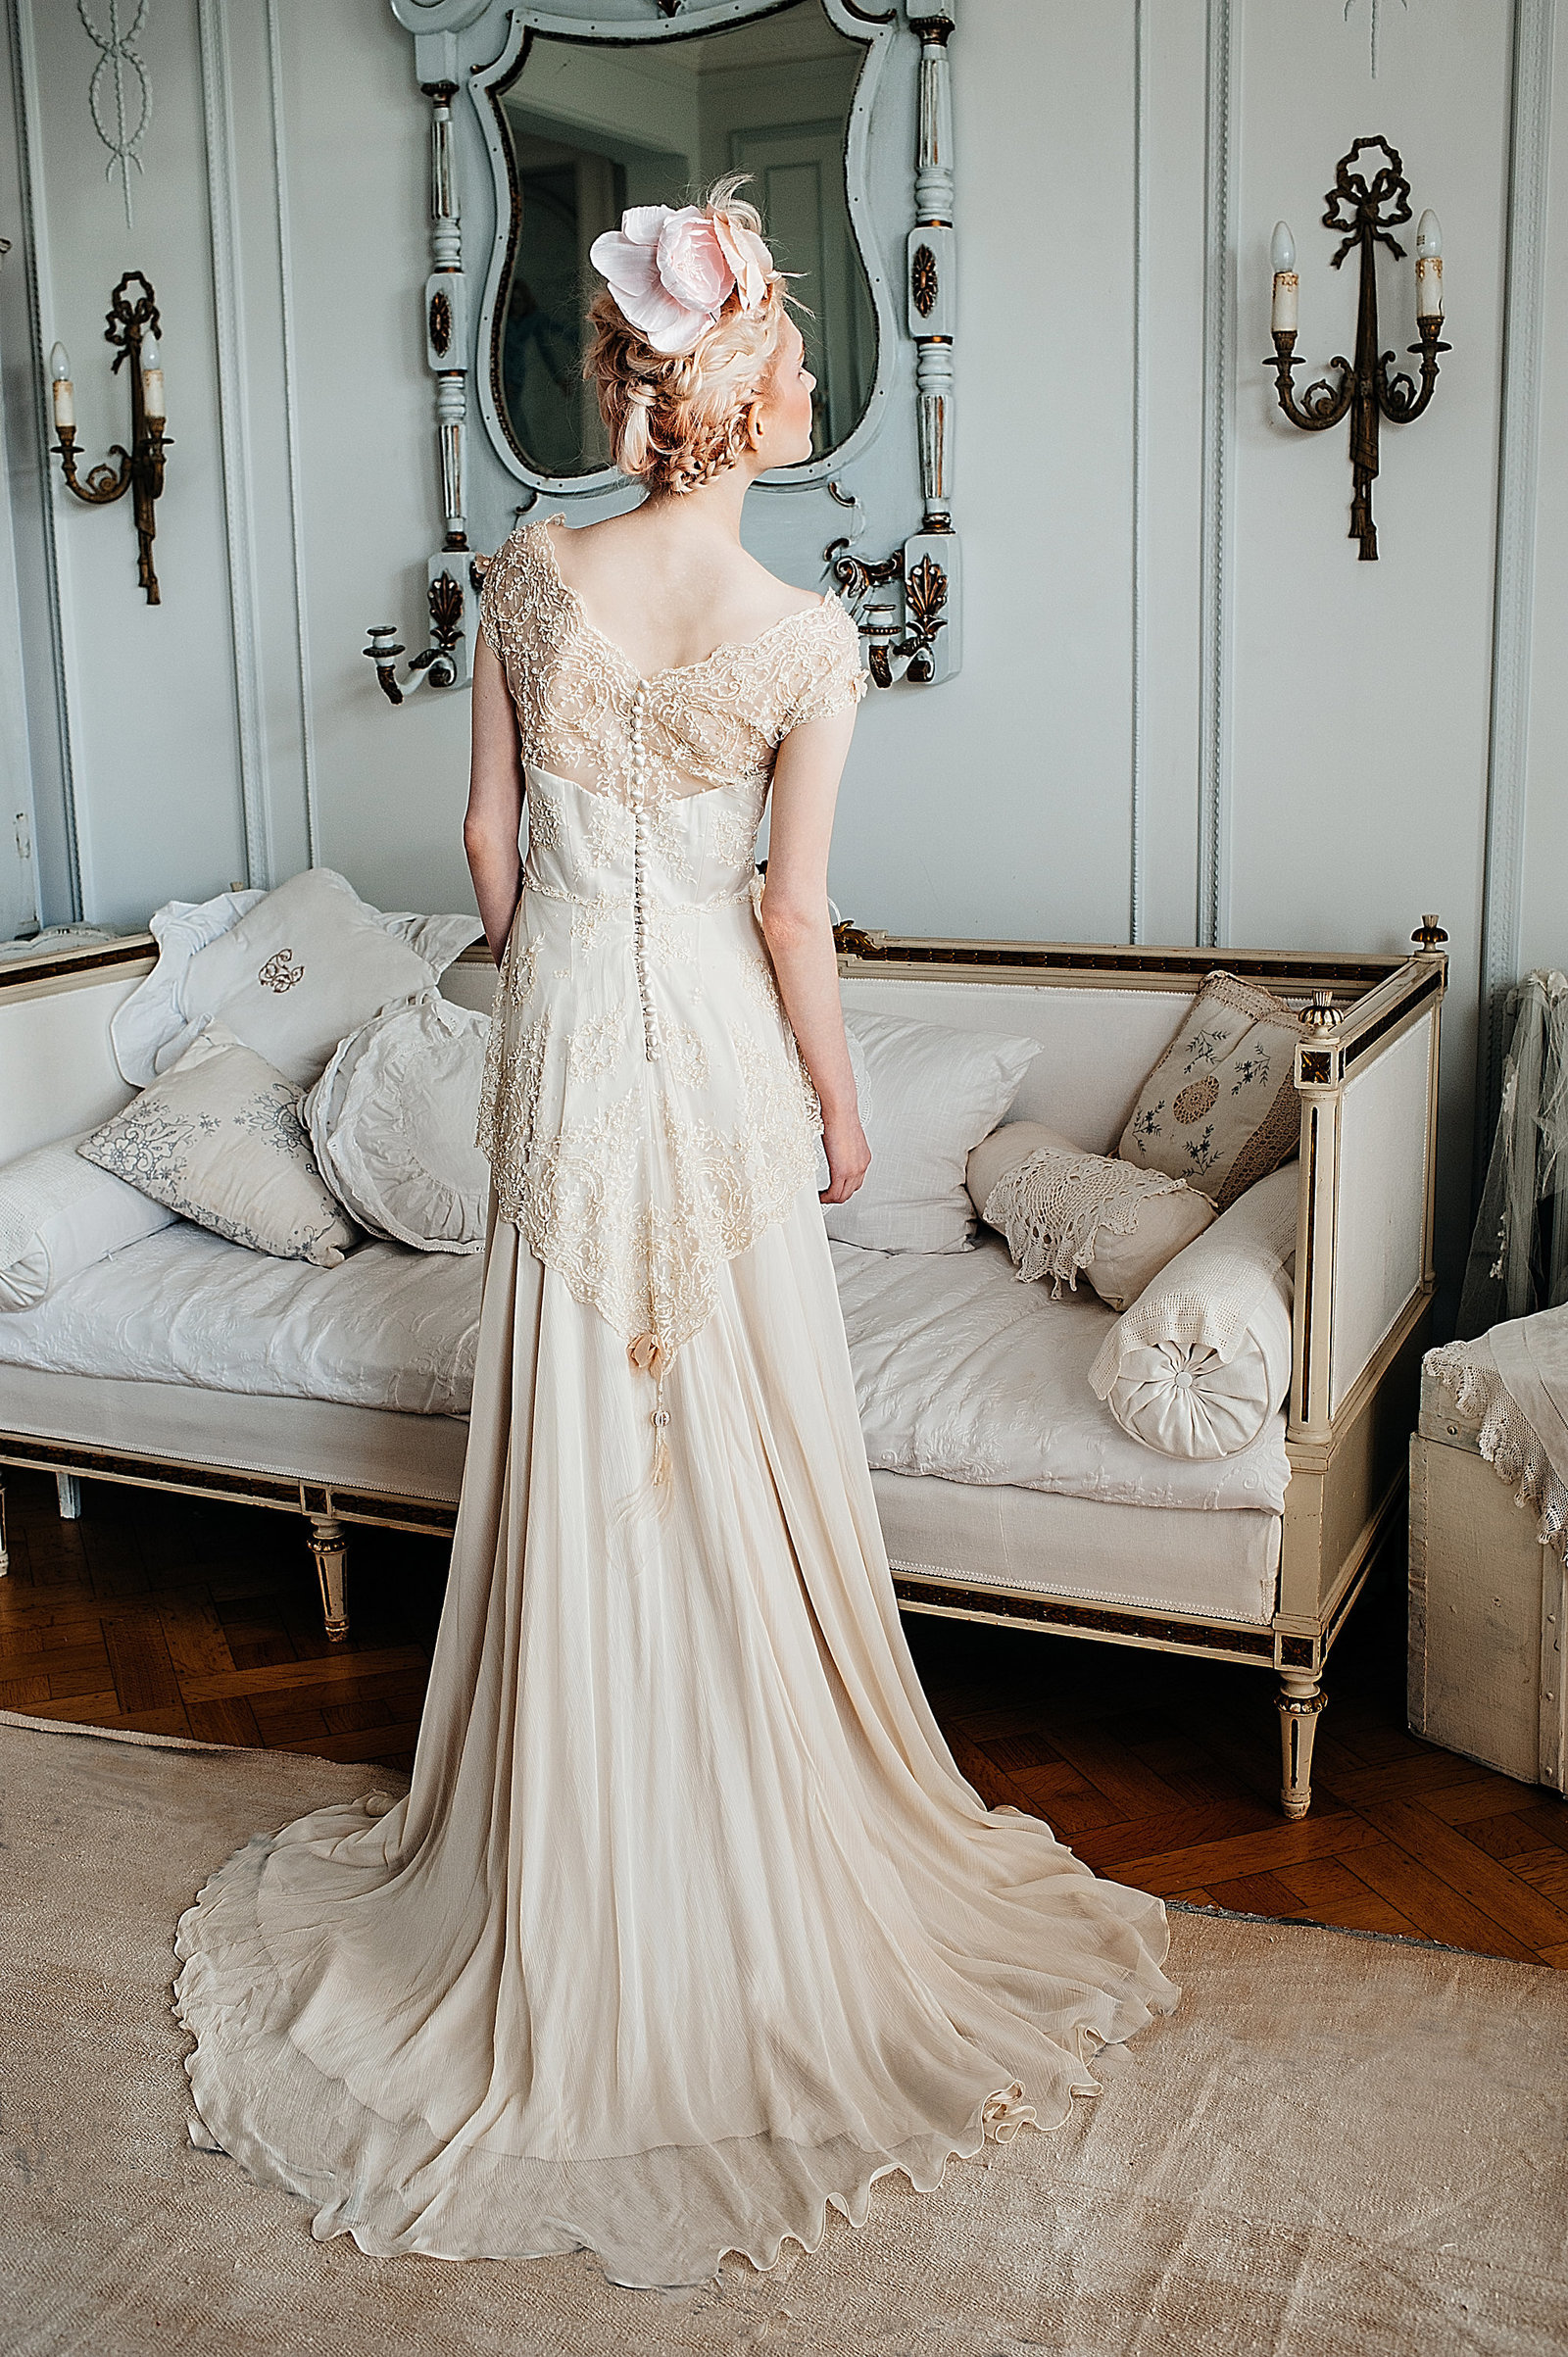 LilyElsie_beaded_lace_edwardian_champagne_wedding_dress_JoanneFlemingDesign